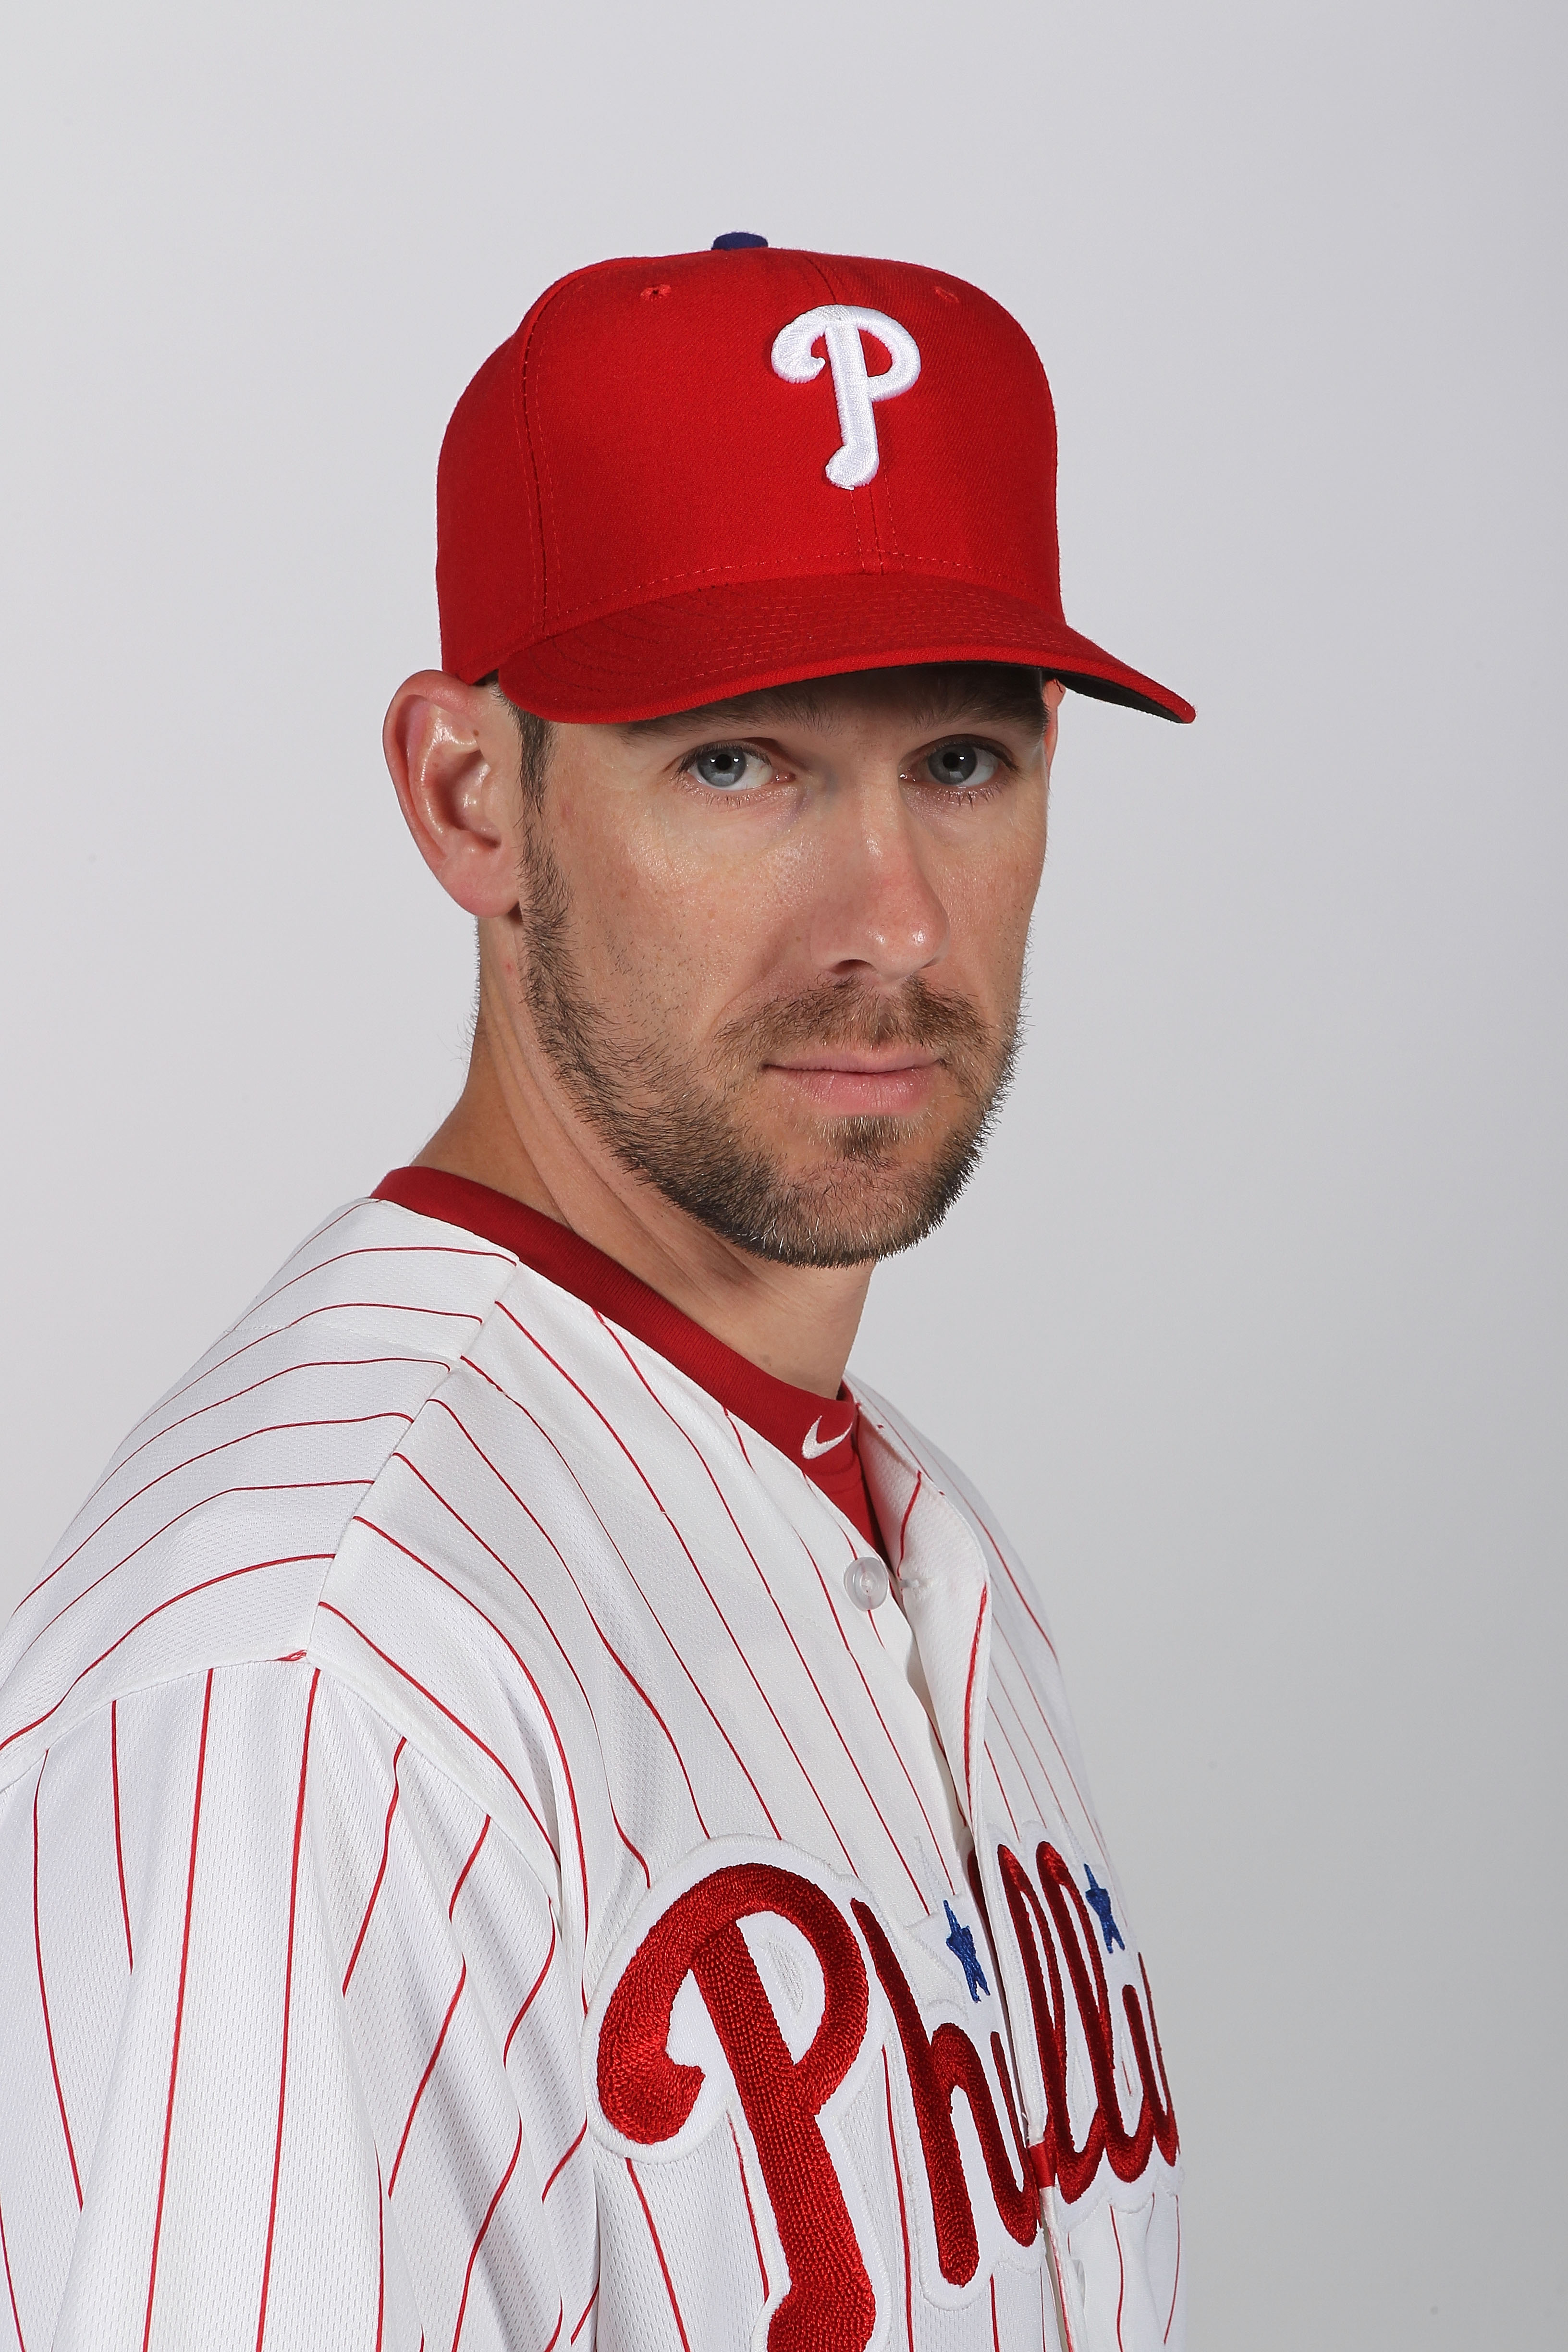 CLEARWATER, FL - FEBRUARY 22:  Cliff Lee #33 of the Philadelphia Phillies poses for a photo during Spring Training Media Photo Day at Bright House Networks Field on February 22, 2011 in Clearwater, Florida.  (Photo by Nick Laham/Getty Images)